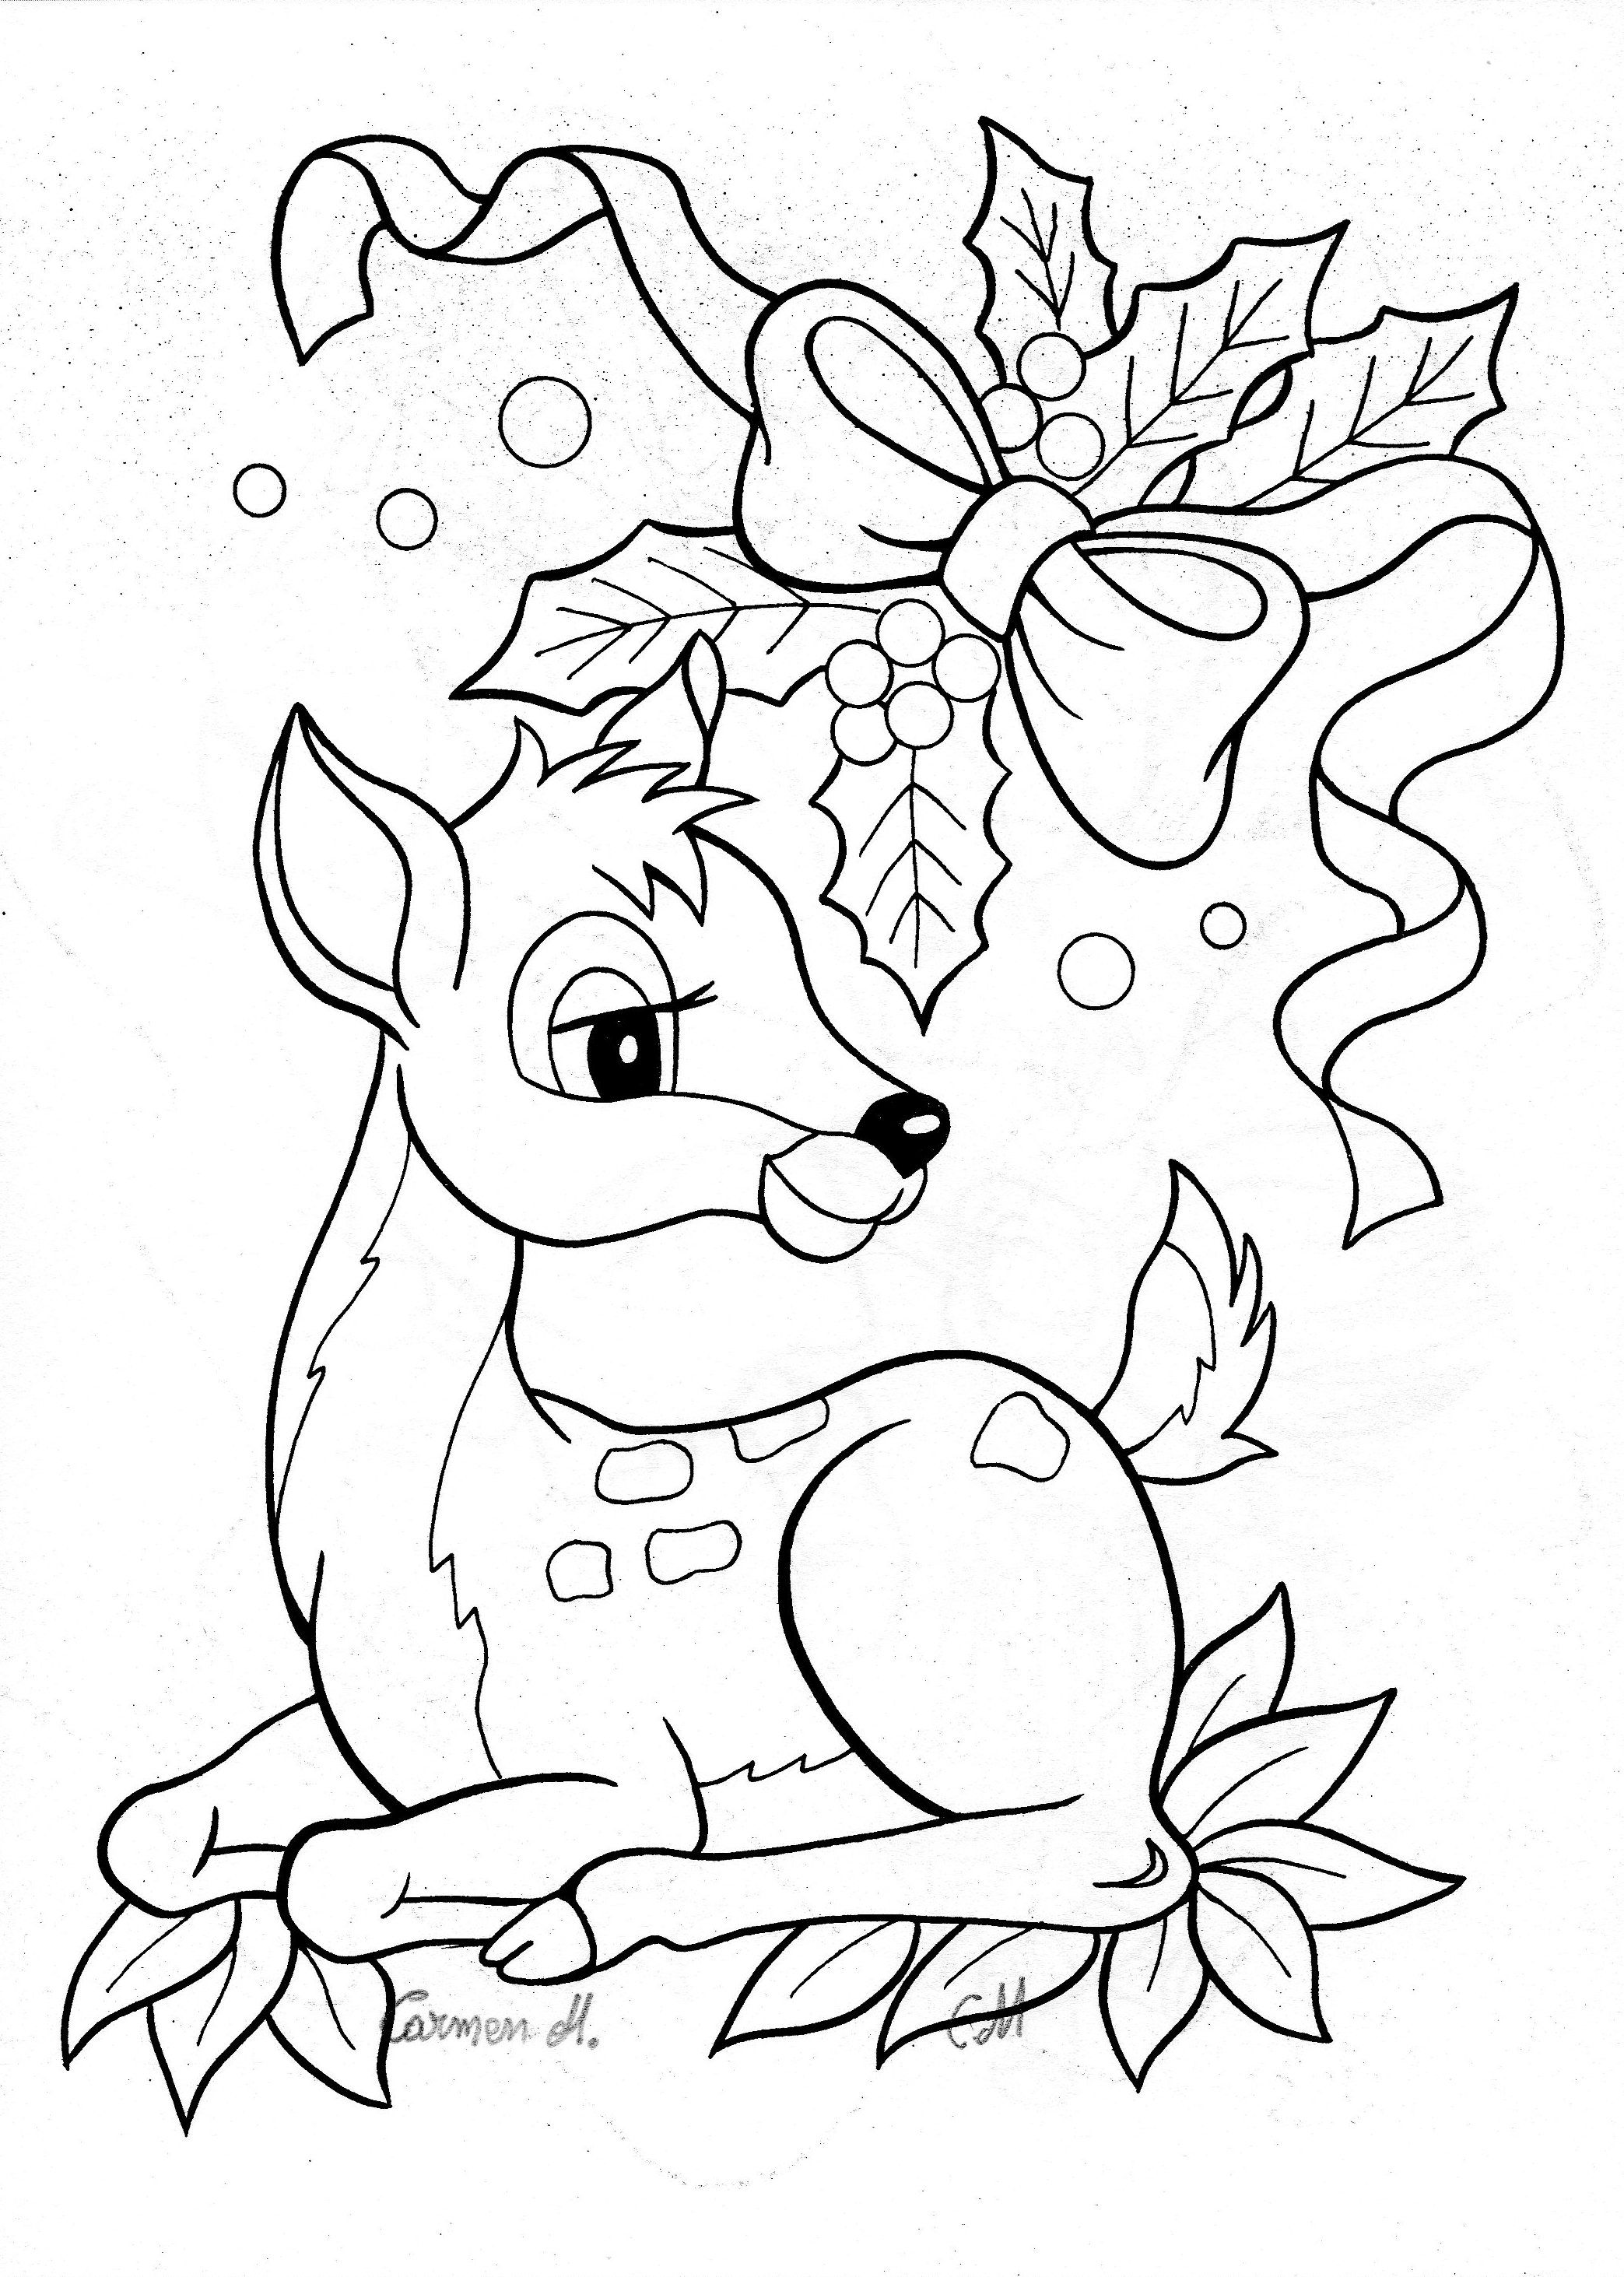 COLOUR IT, SEW IT, TRACE IT, ETC. CHRISTMAS, BAMBI, DEER … | Pinteres…